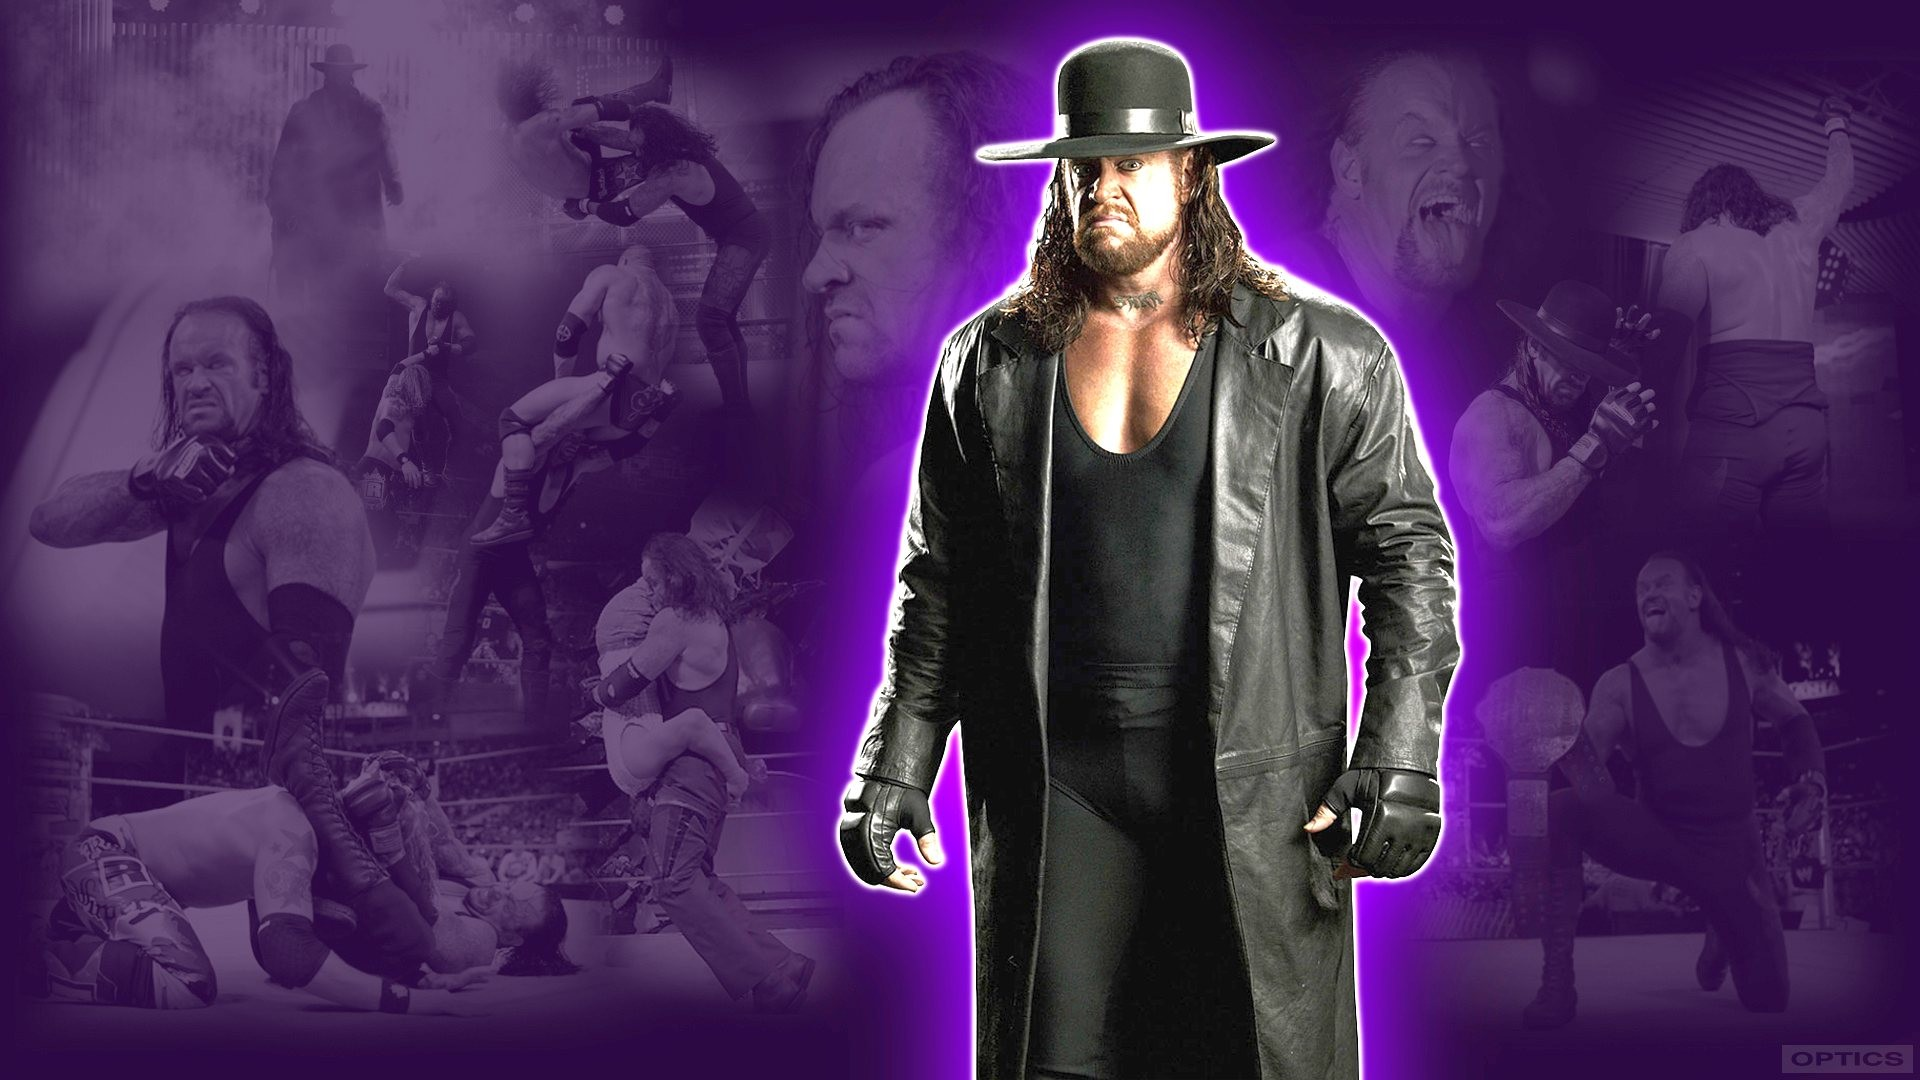 1920x1080 Undertaker Wallpaper | undertaker wallpaper 300x210 Undertaker Wallpapers  in HD Gallery 2014